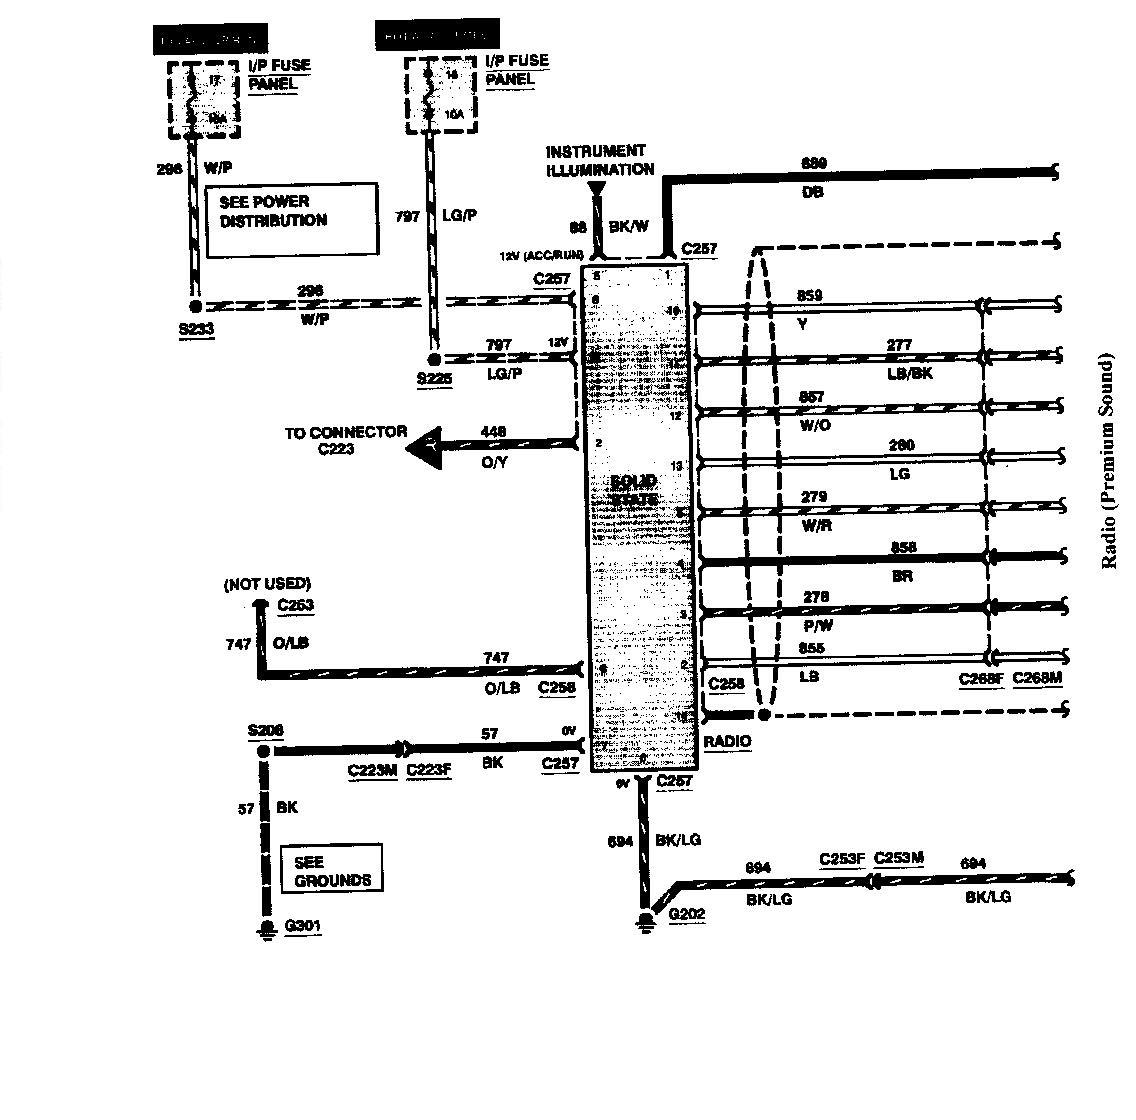 lincoln mark viii stereo wiring diagram wiring harness wiring rh gatbook co 1994 lincoln mark viii wiring diagram 1997 lincoln mark viii wiring diagram